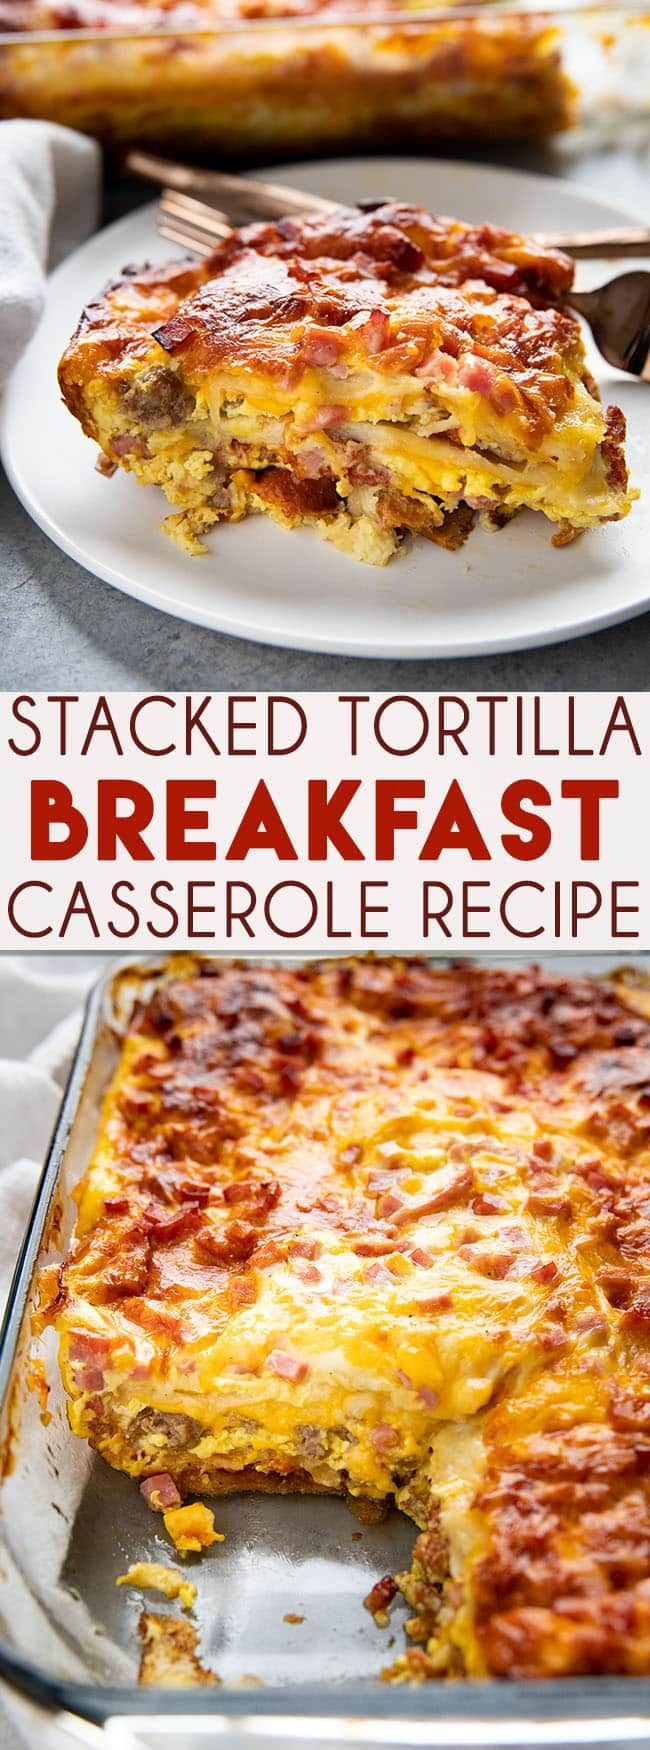 Stacked Tortilla Breakfast Casserole images